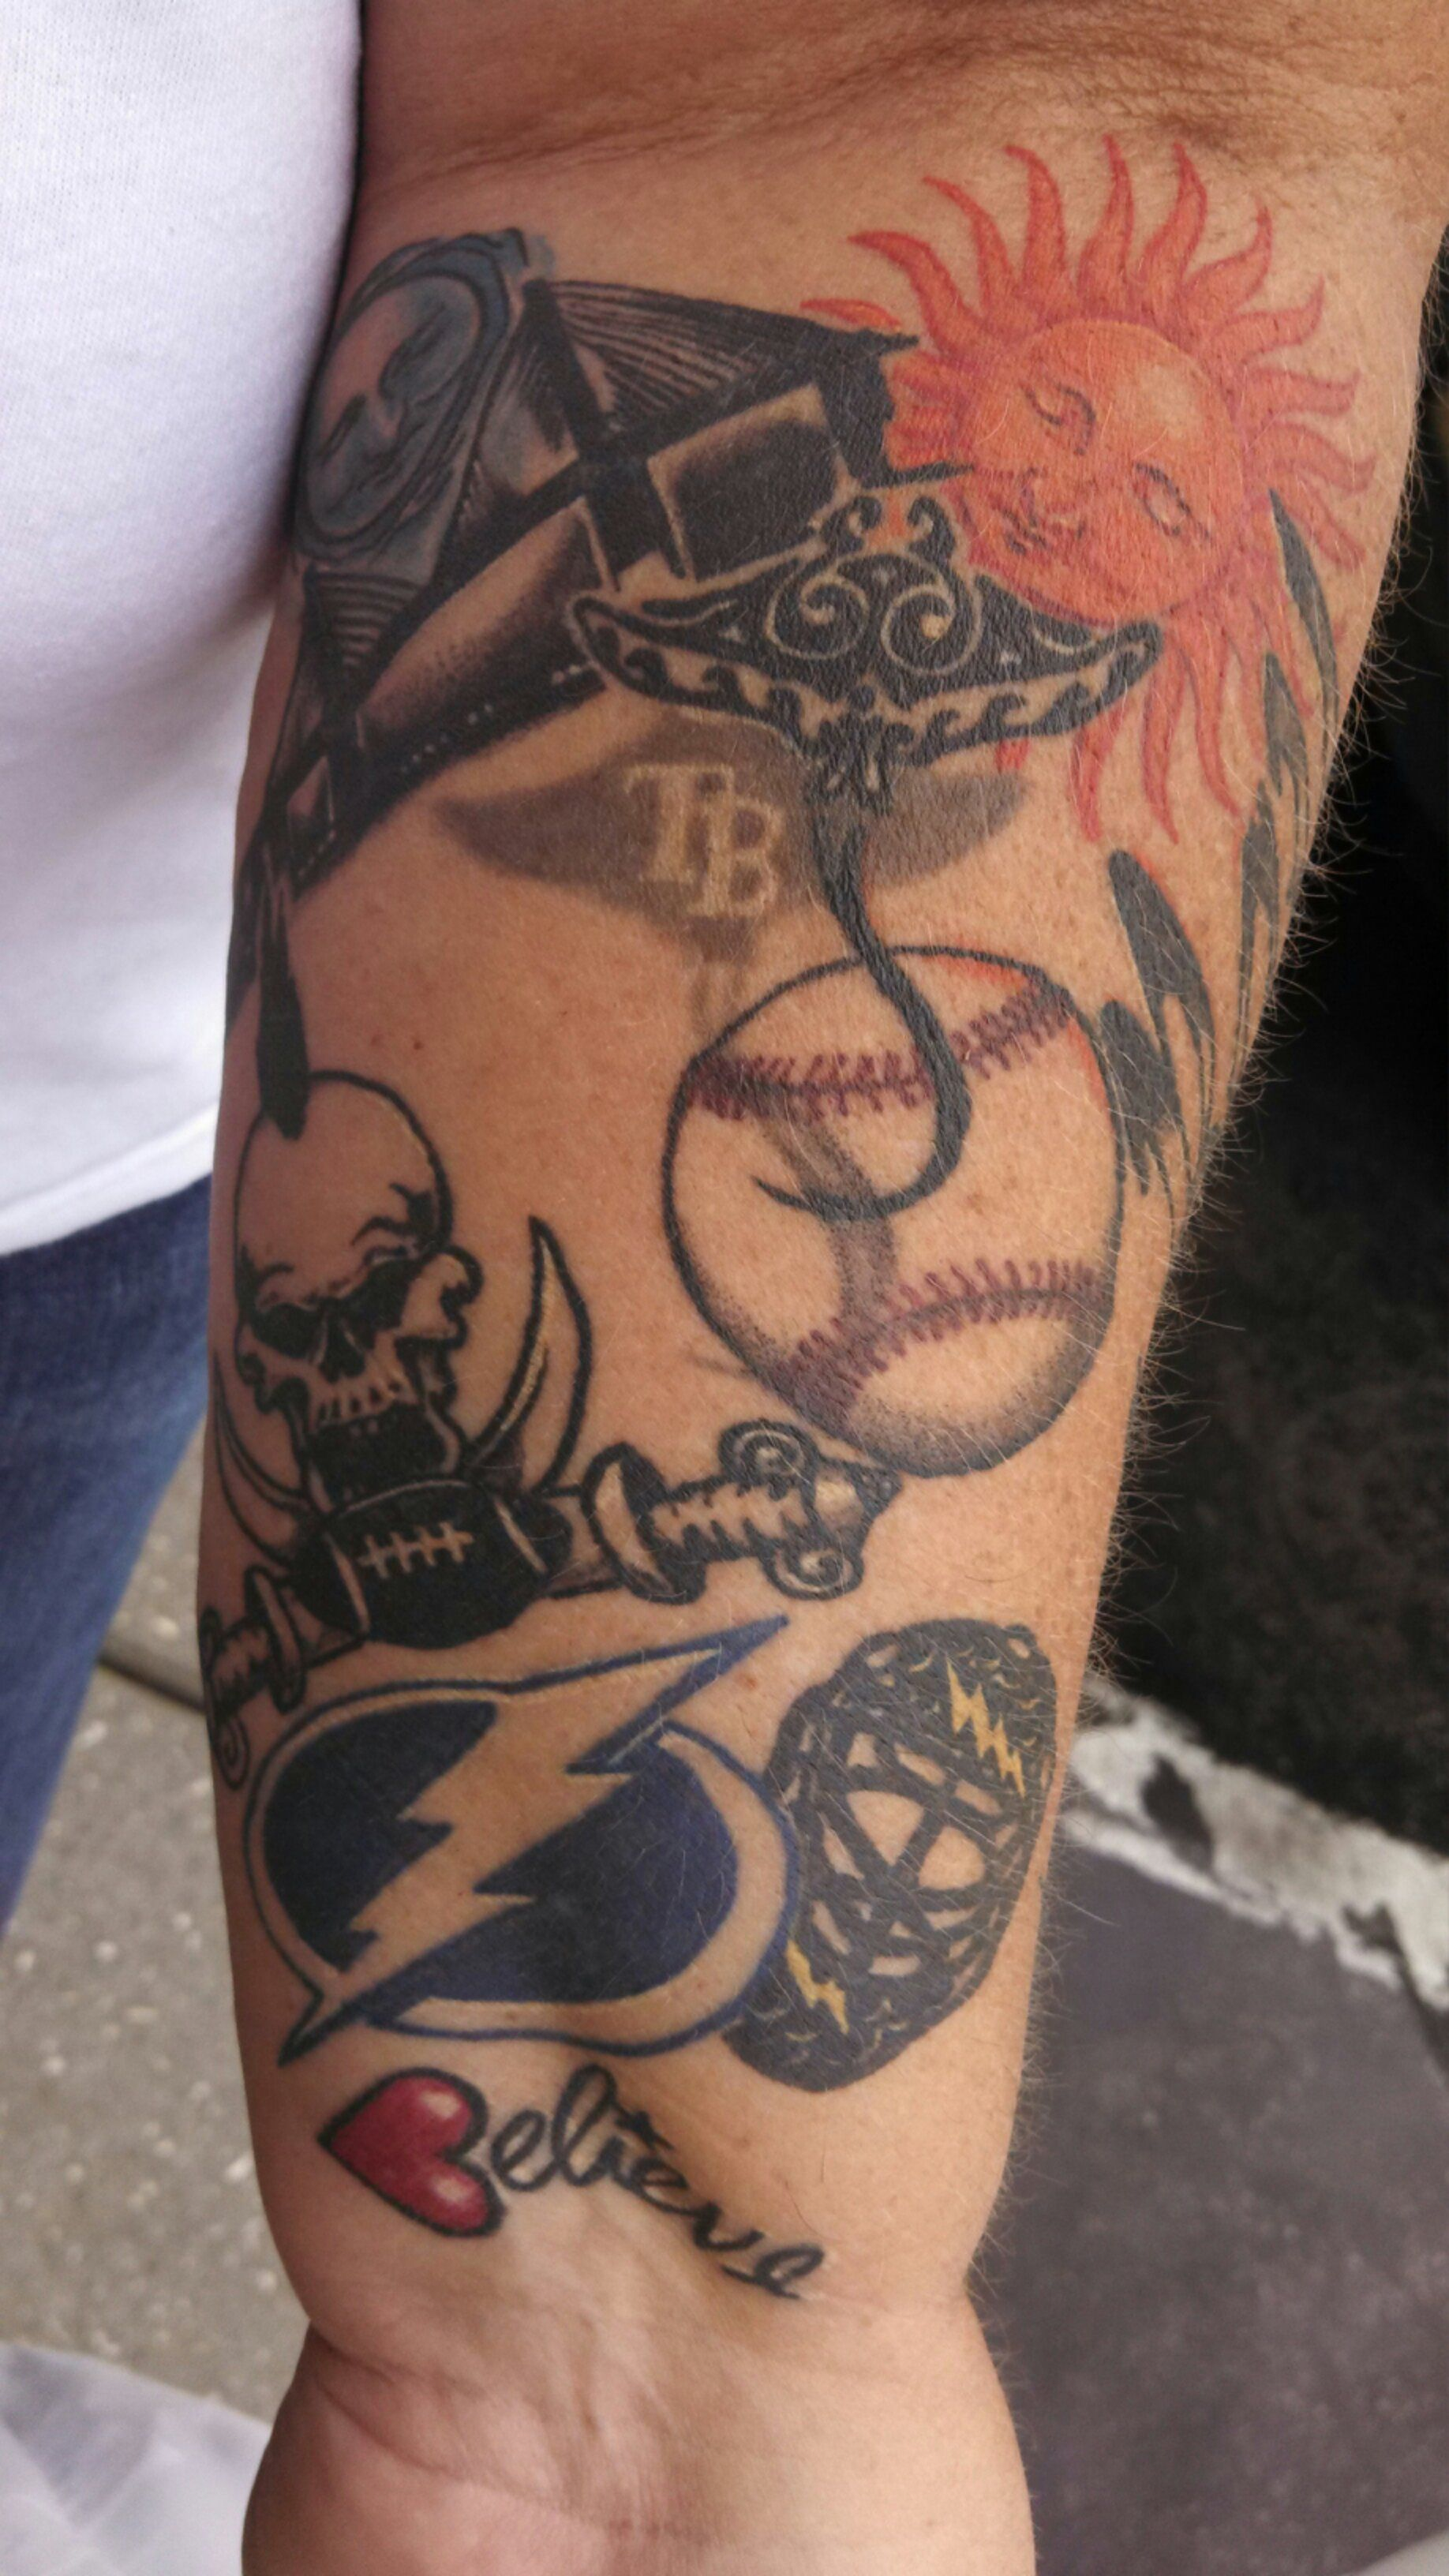 Tampa bay buccaneers tattoos images google search for Bay area tattoo artists